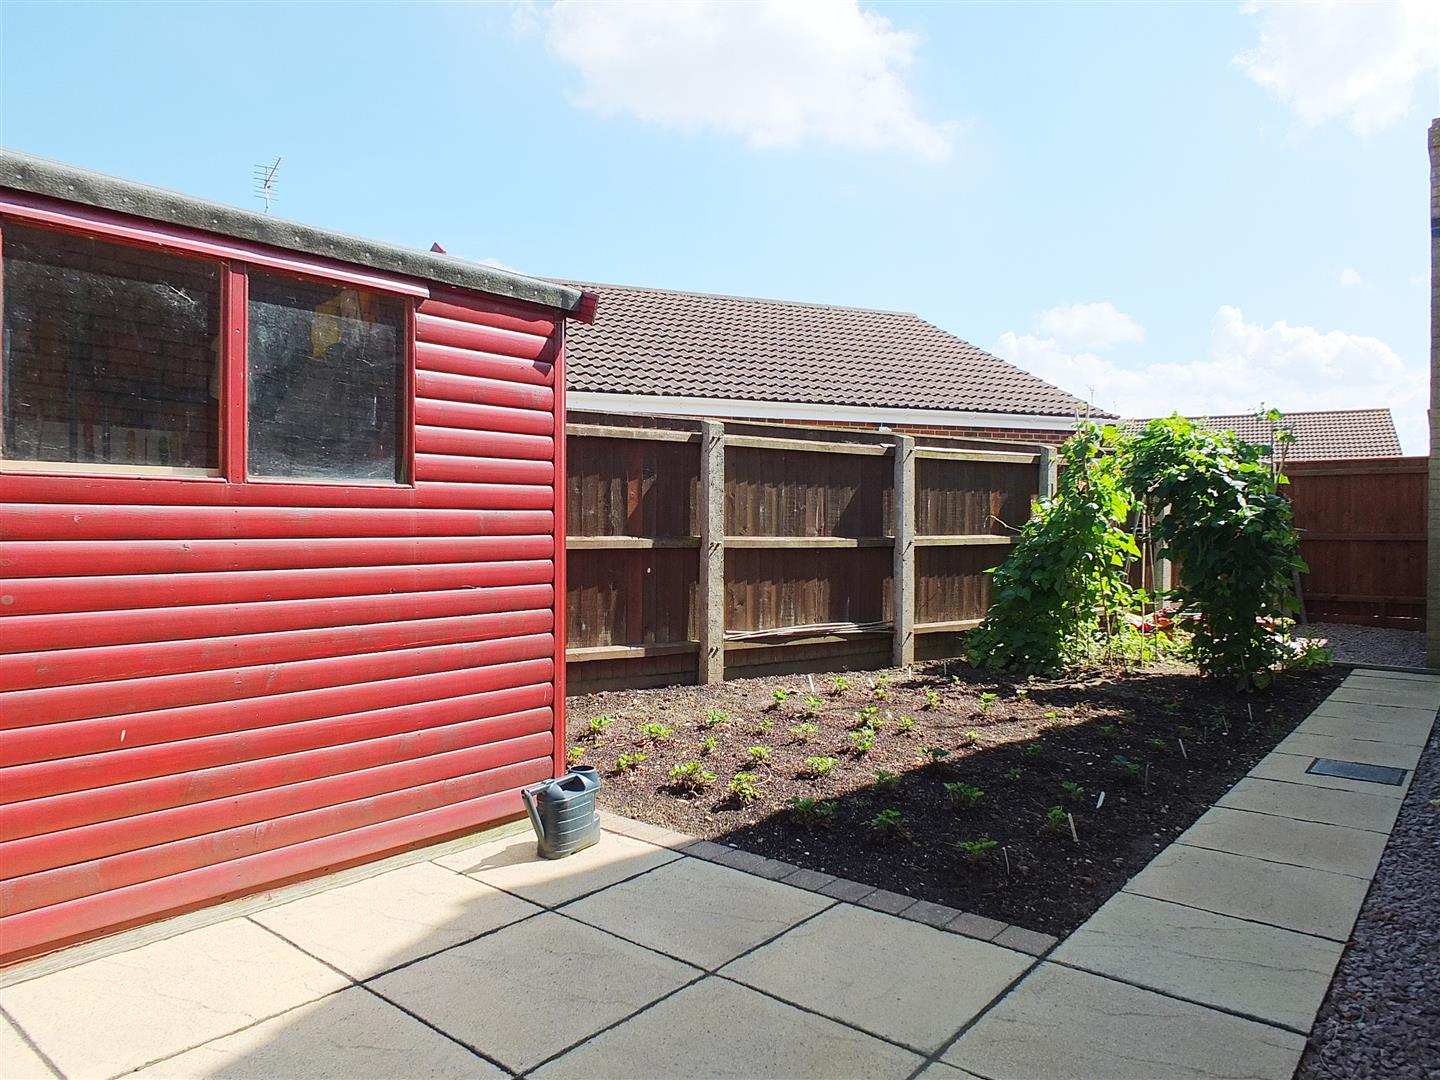 3 bed detached bungalow for sale in Long Sutton Spalding, PE12 9FT  - Property Image 18